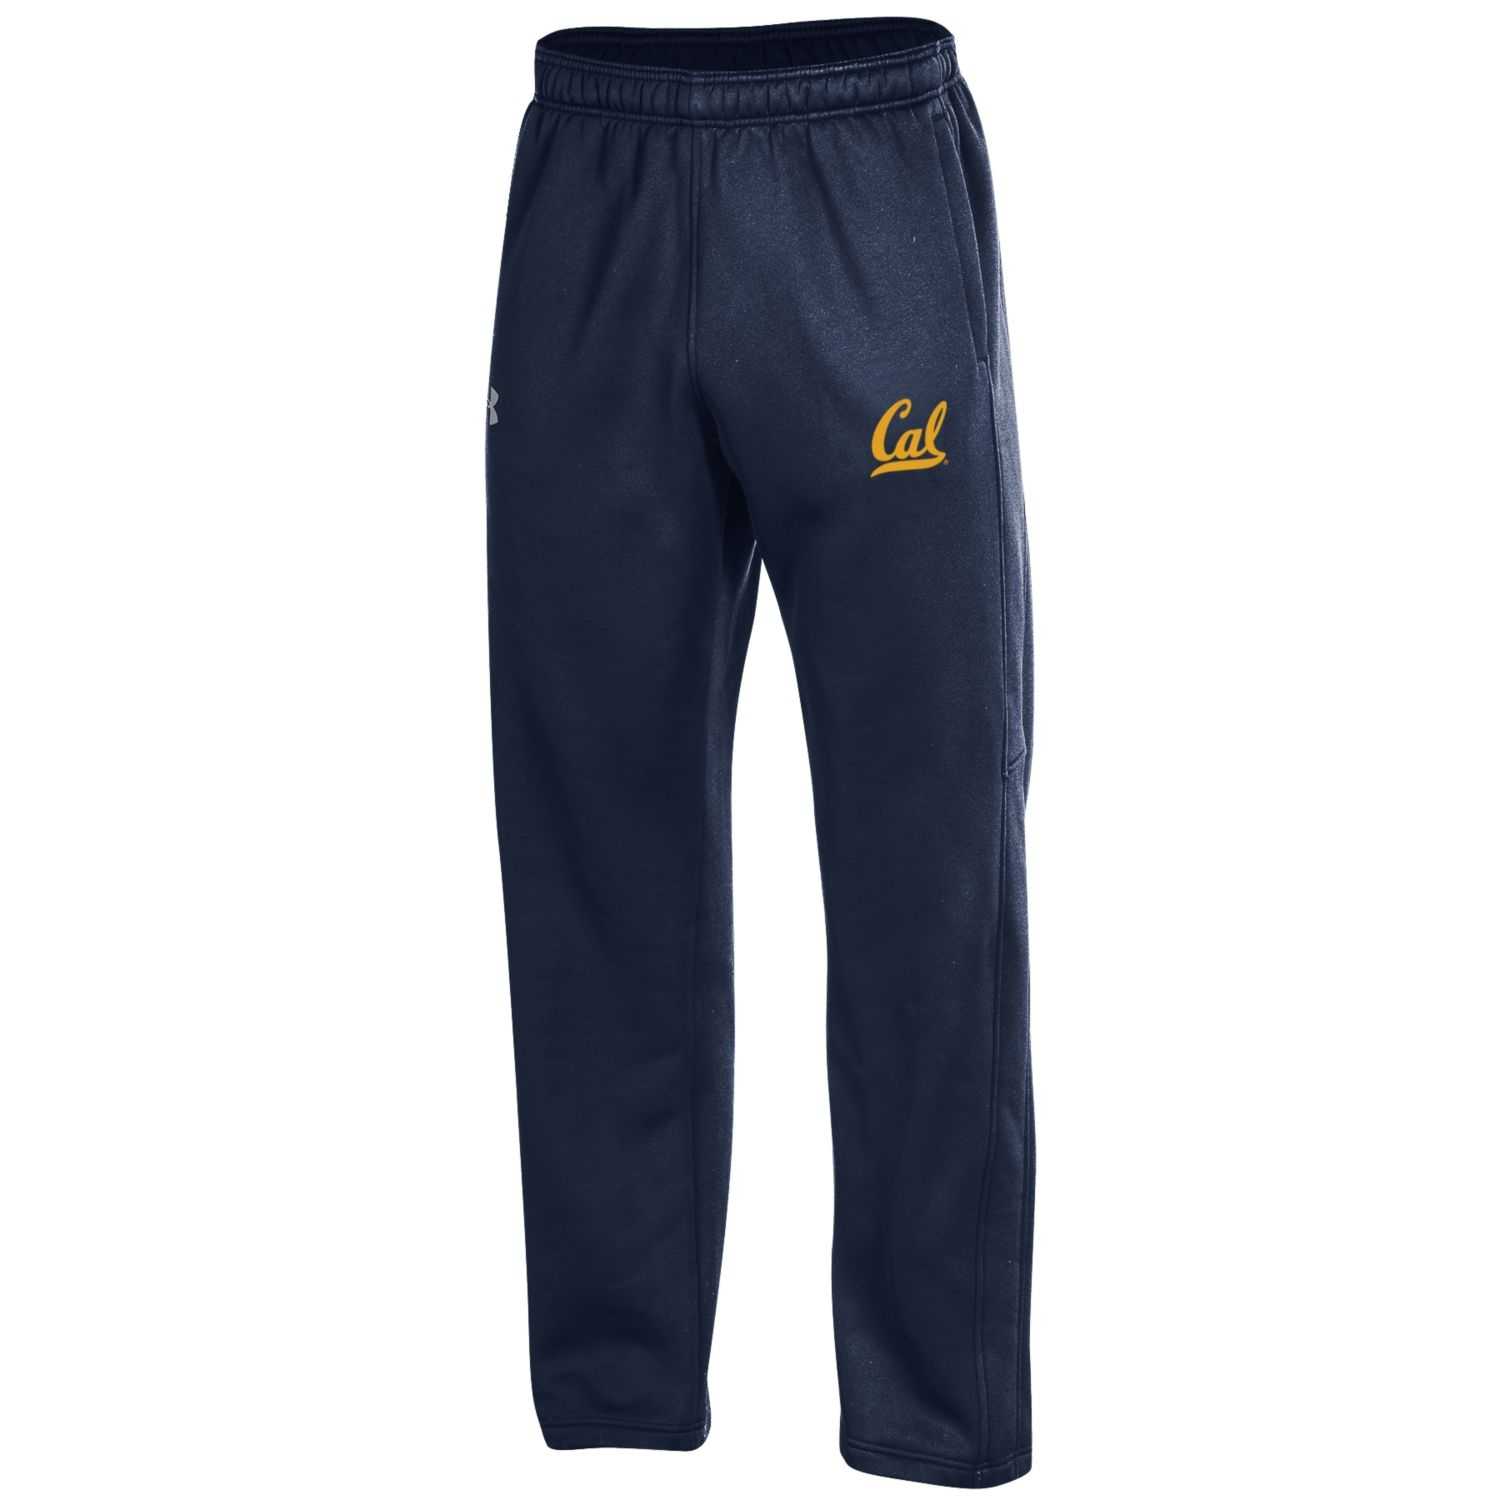 University of California Berkeley Under Armour Mens Updated AF Pant